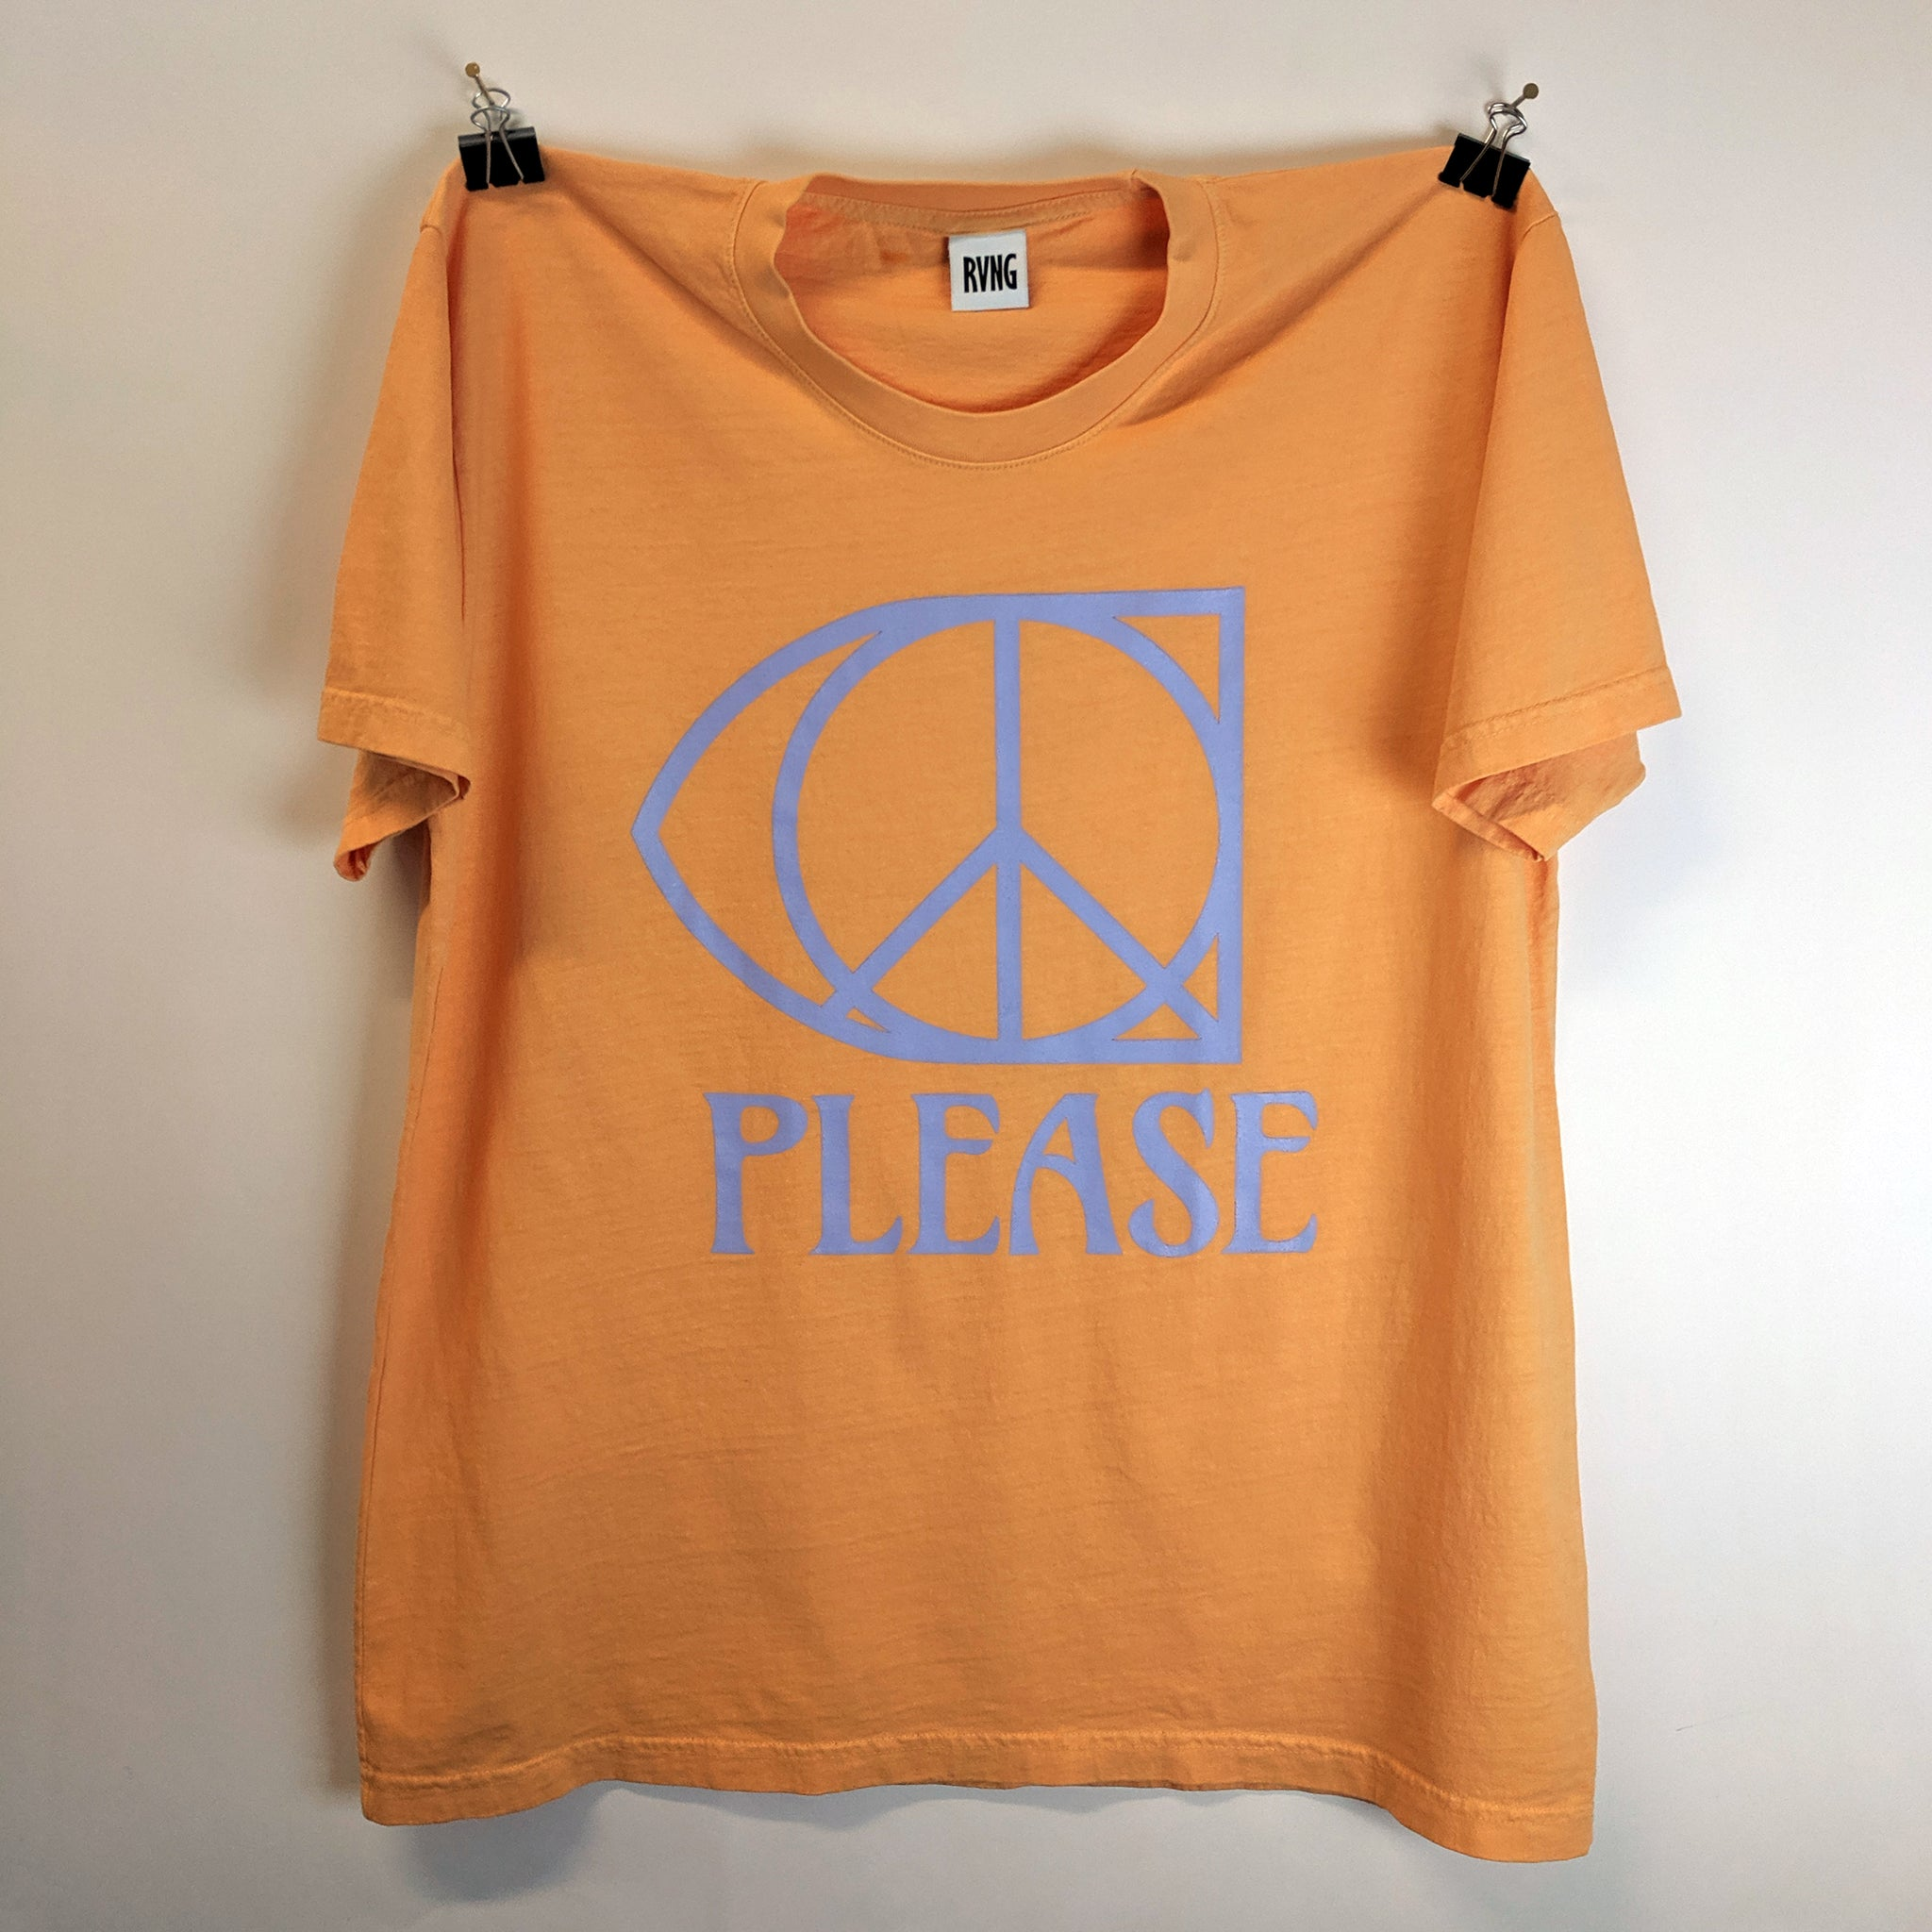 RVNG Intl. PEACE, PLEASE Tee